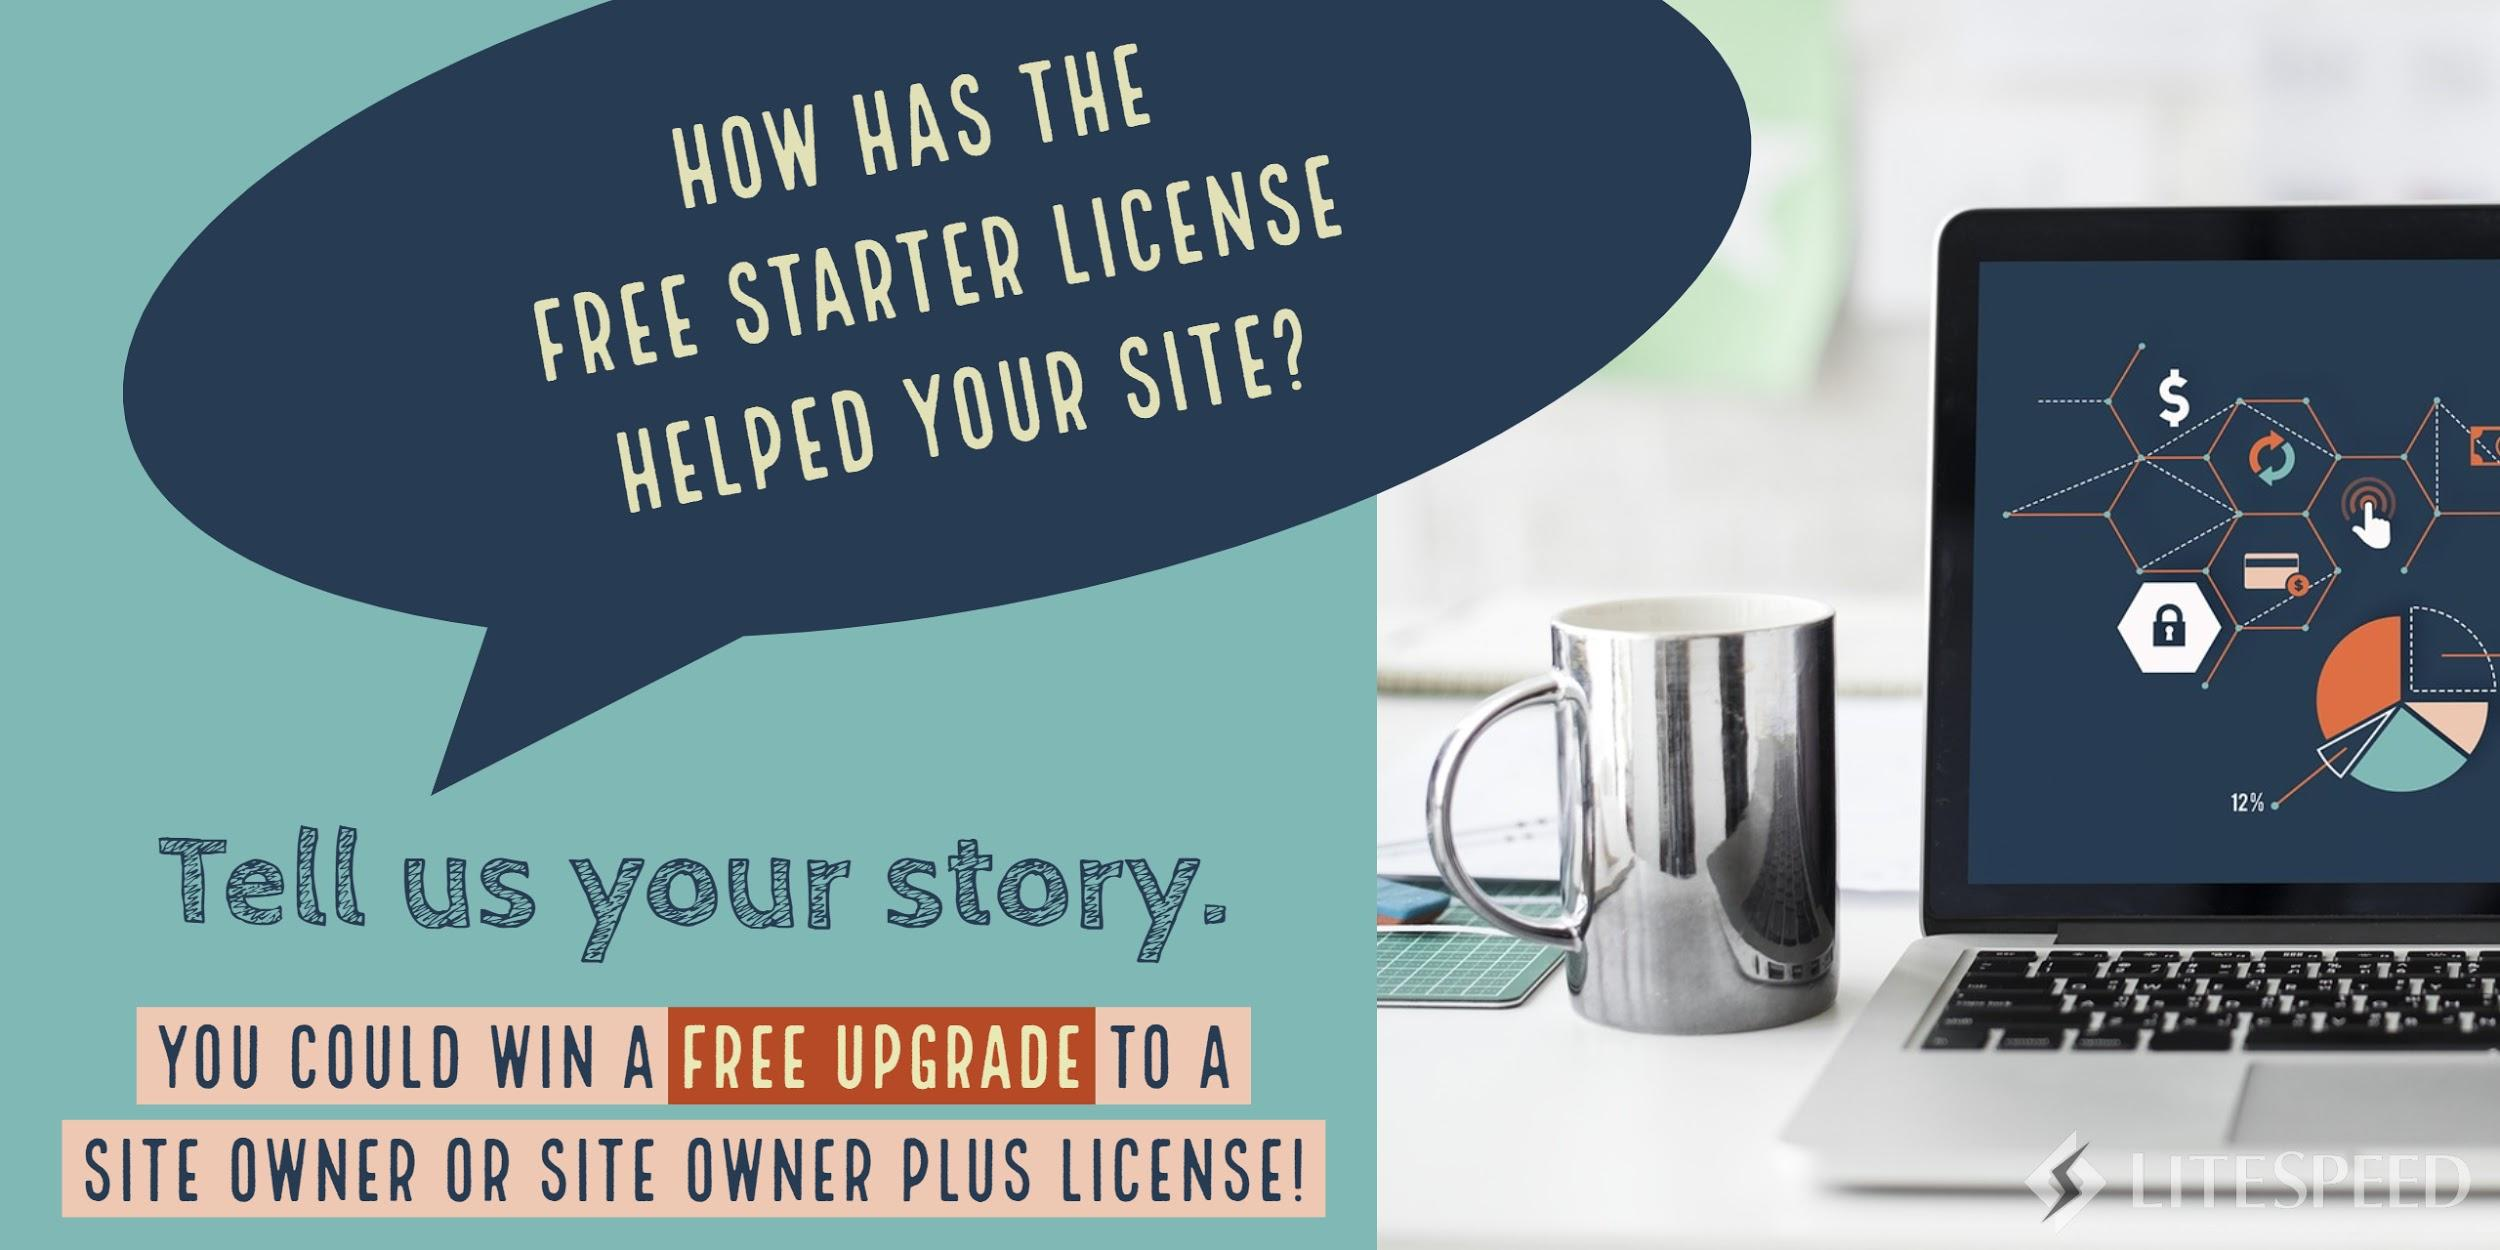 Win an Upgrade to a Free Site Owner License!